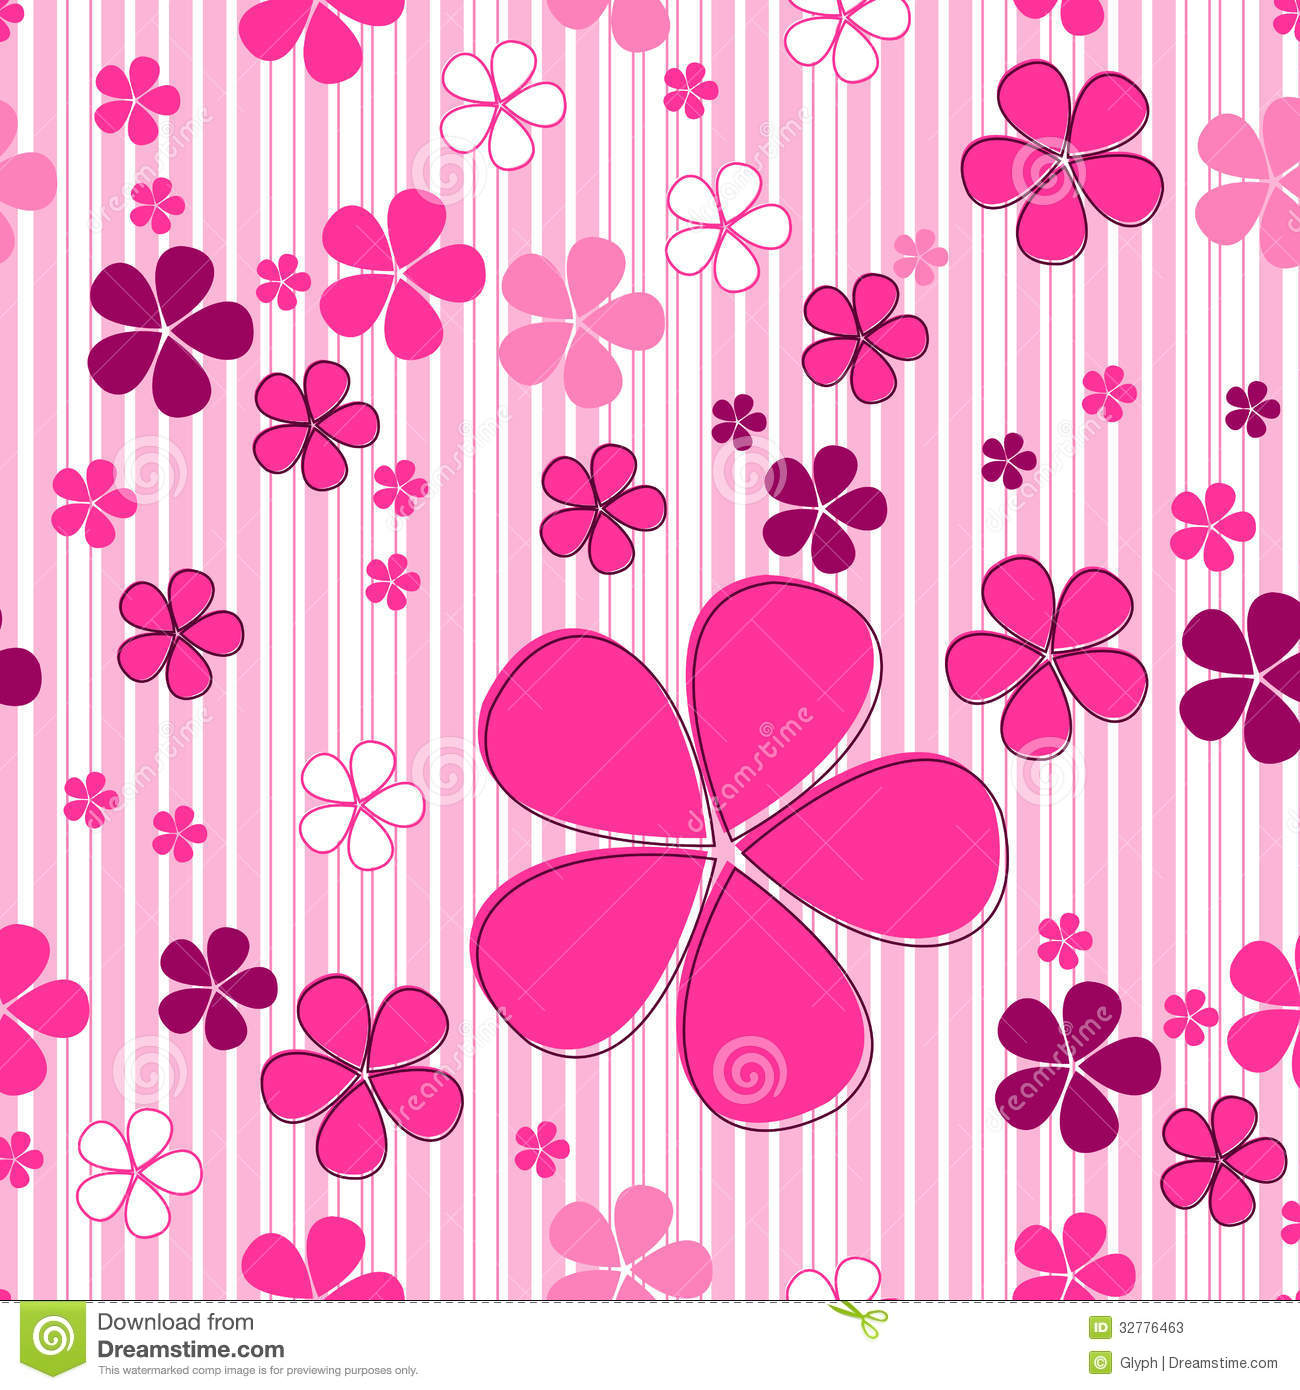 Seamless Cute Floral Background Stock Vector Illustration Of